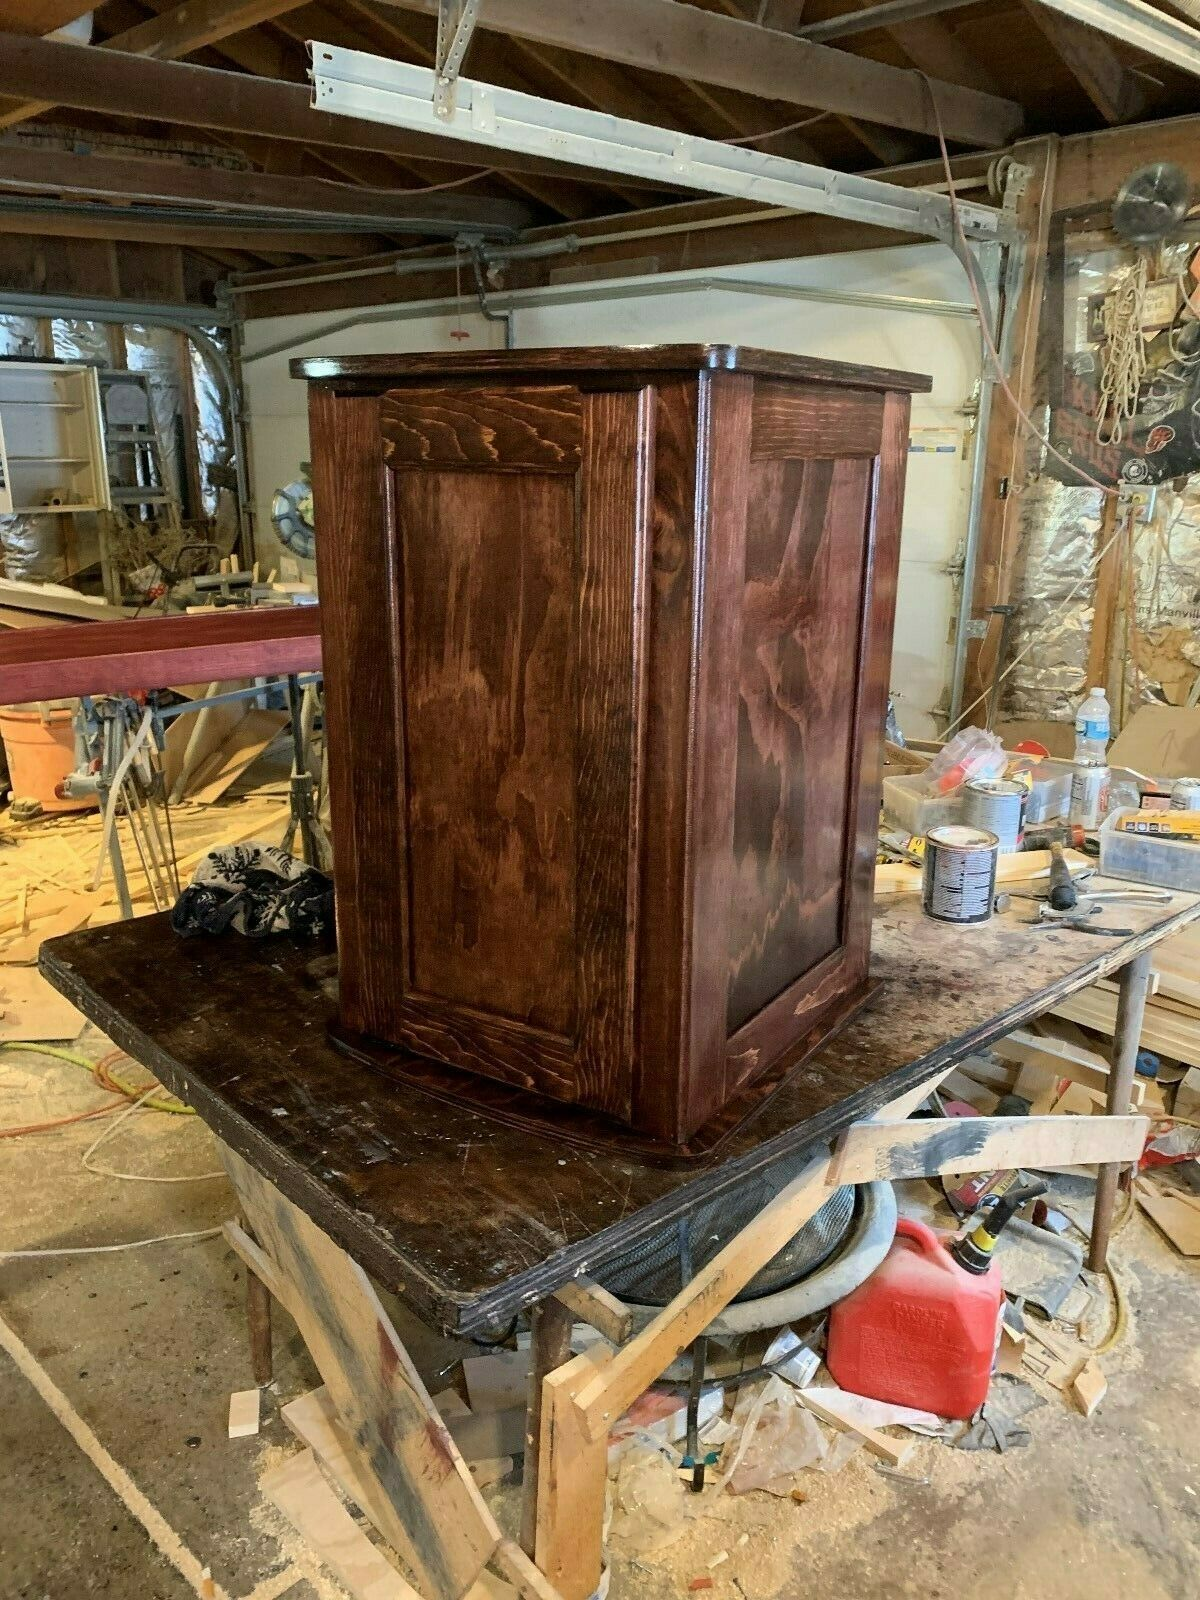 29 32 gallon bio cube stand red oak stain with extras please look at photos